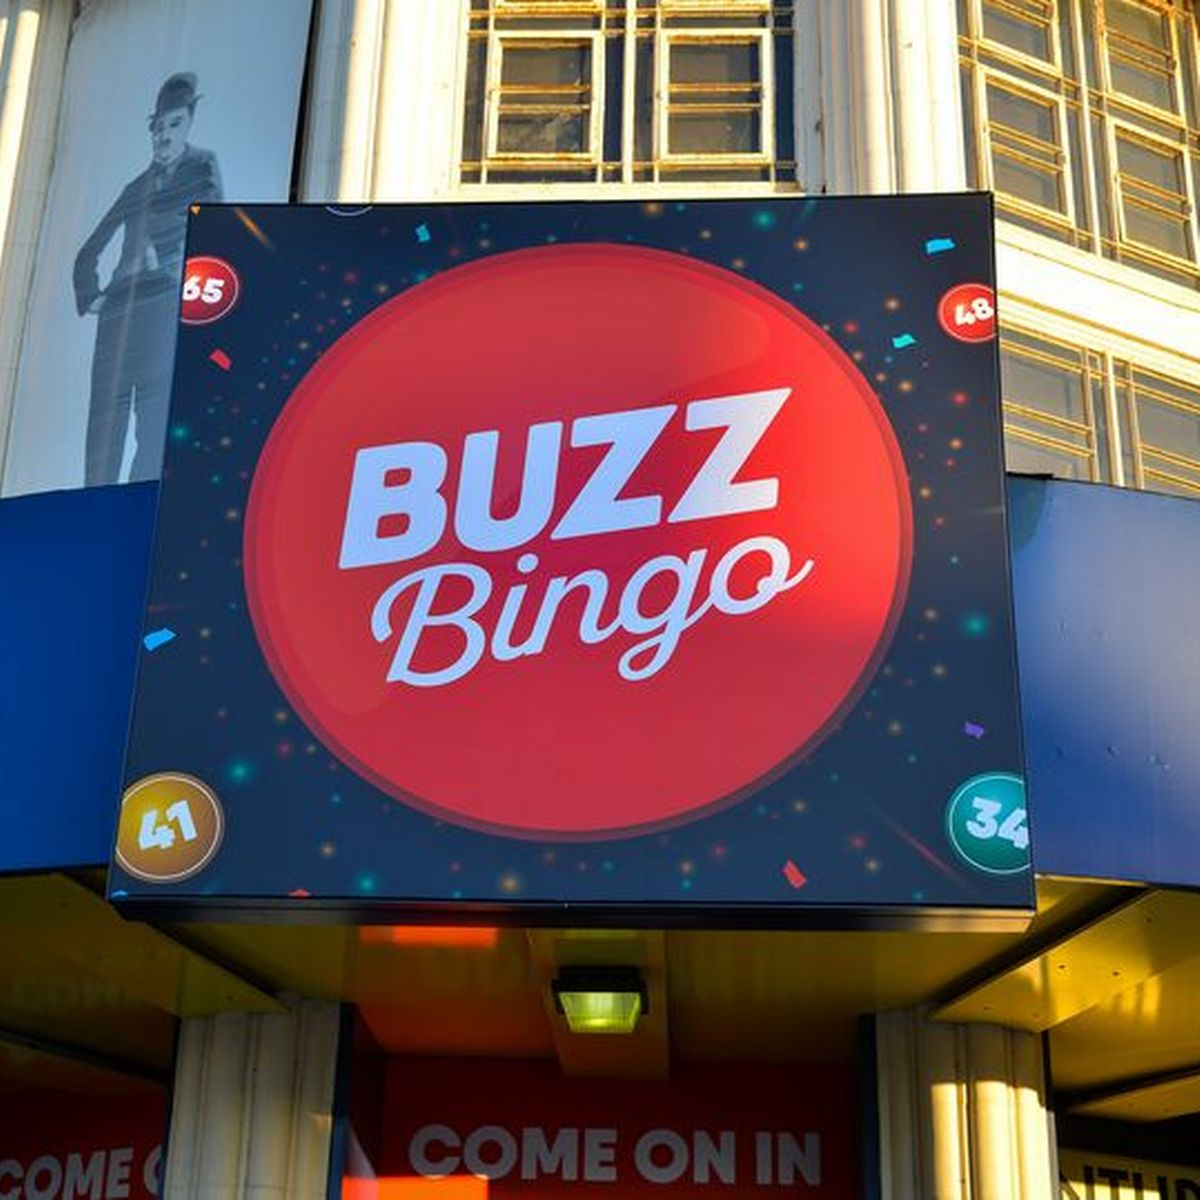 Buzz Bingo Announce Harry Lang's Appointment